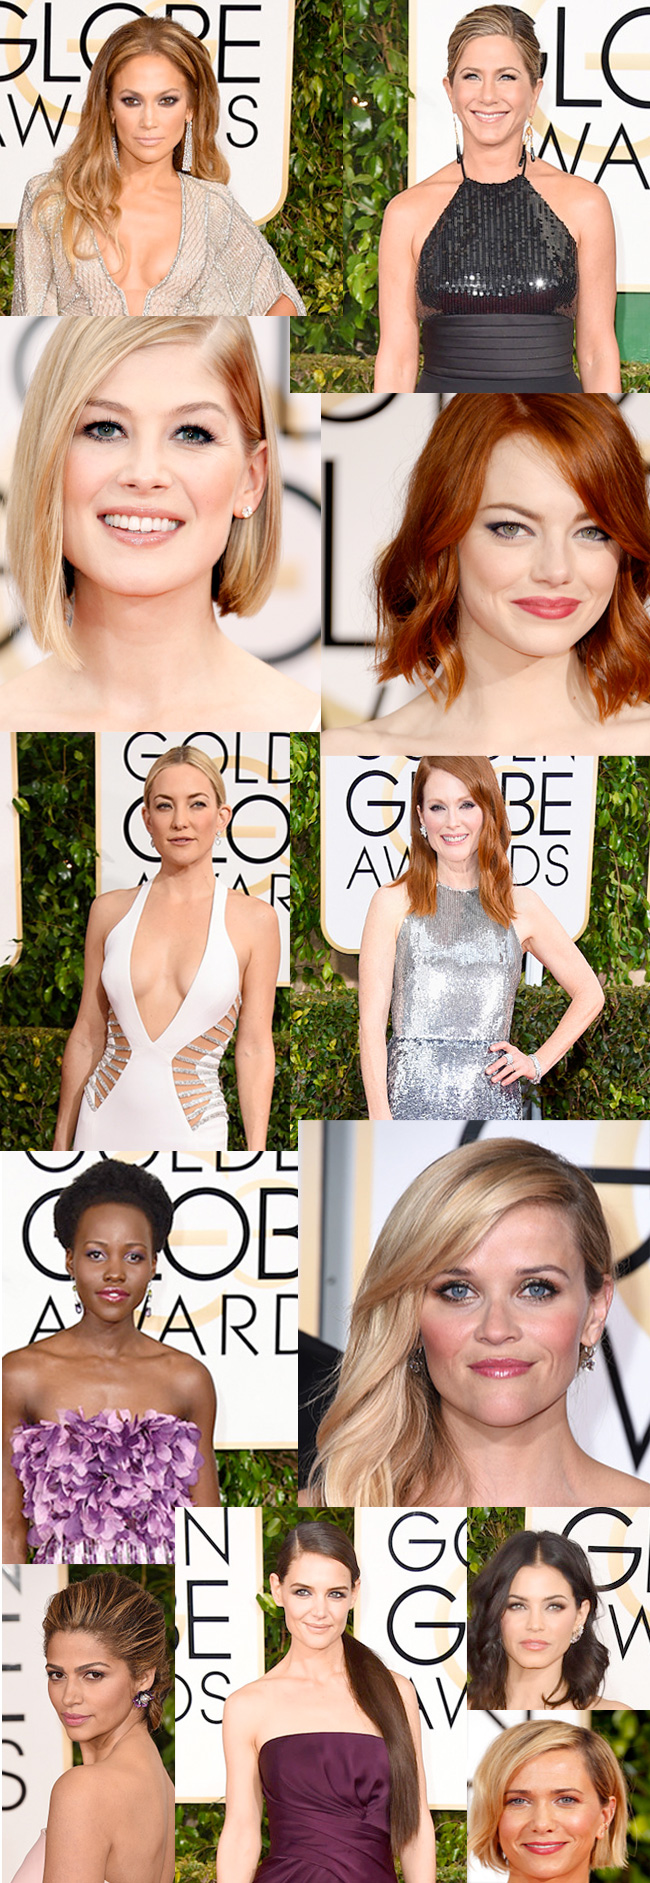 Top 12 Beauty Looks from the 2015 Golden Globe Awards. Complete hair and makeup breakdowns straight from the celebrity makeup artists and hairstylists that worked on the celebrities.